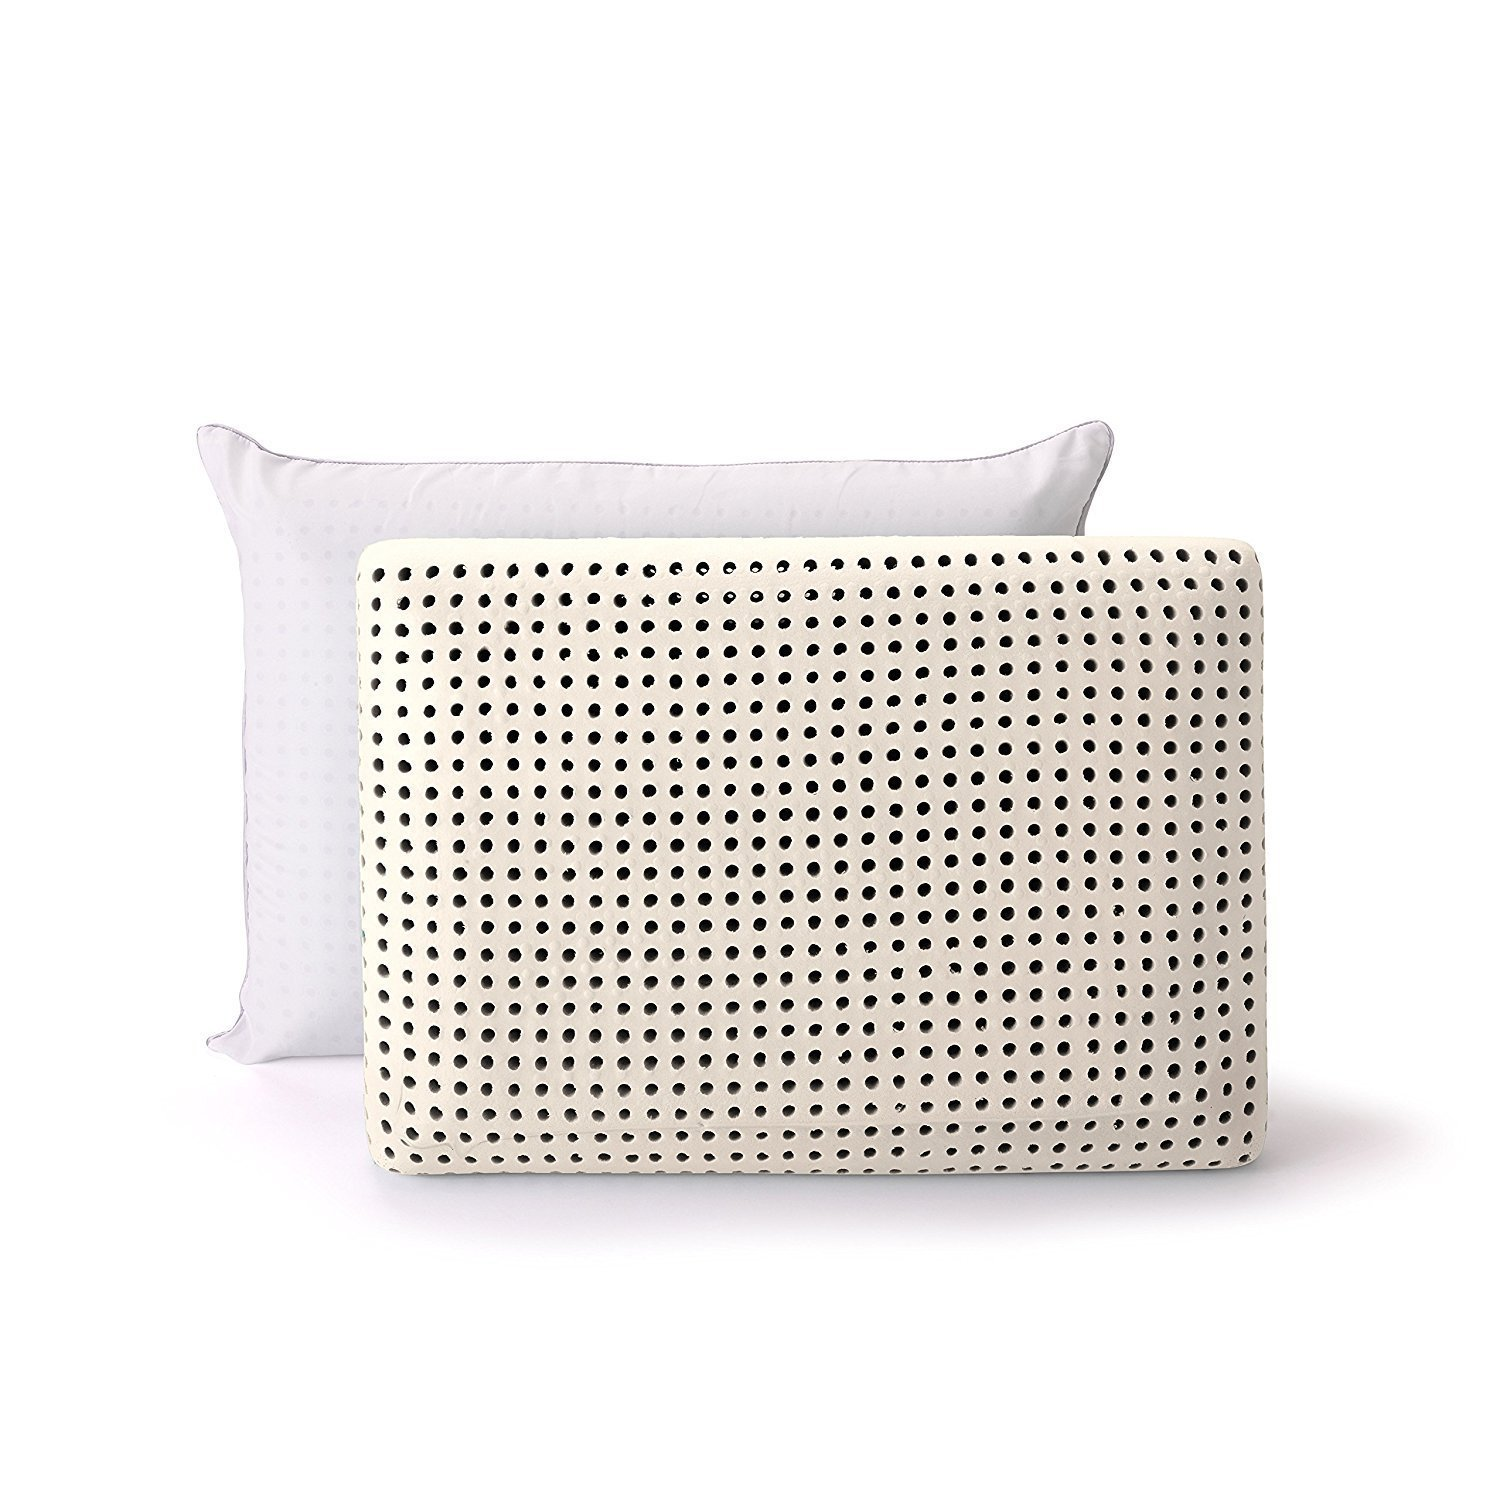 Sleepjoy Viscofresh Memory Foam Pillow Home Furniture Design